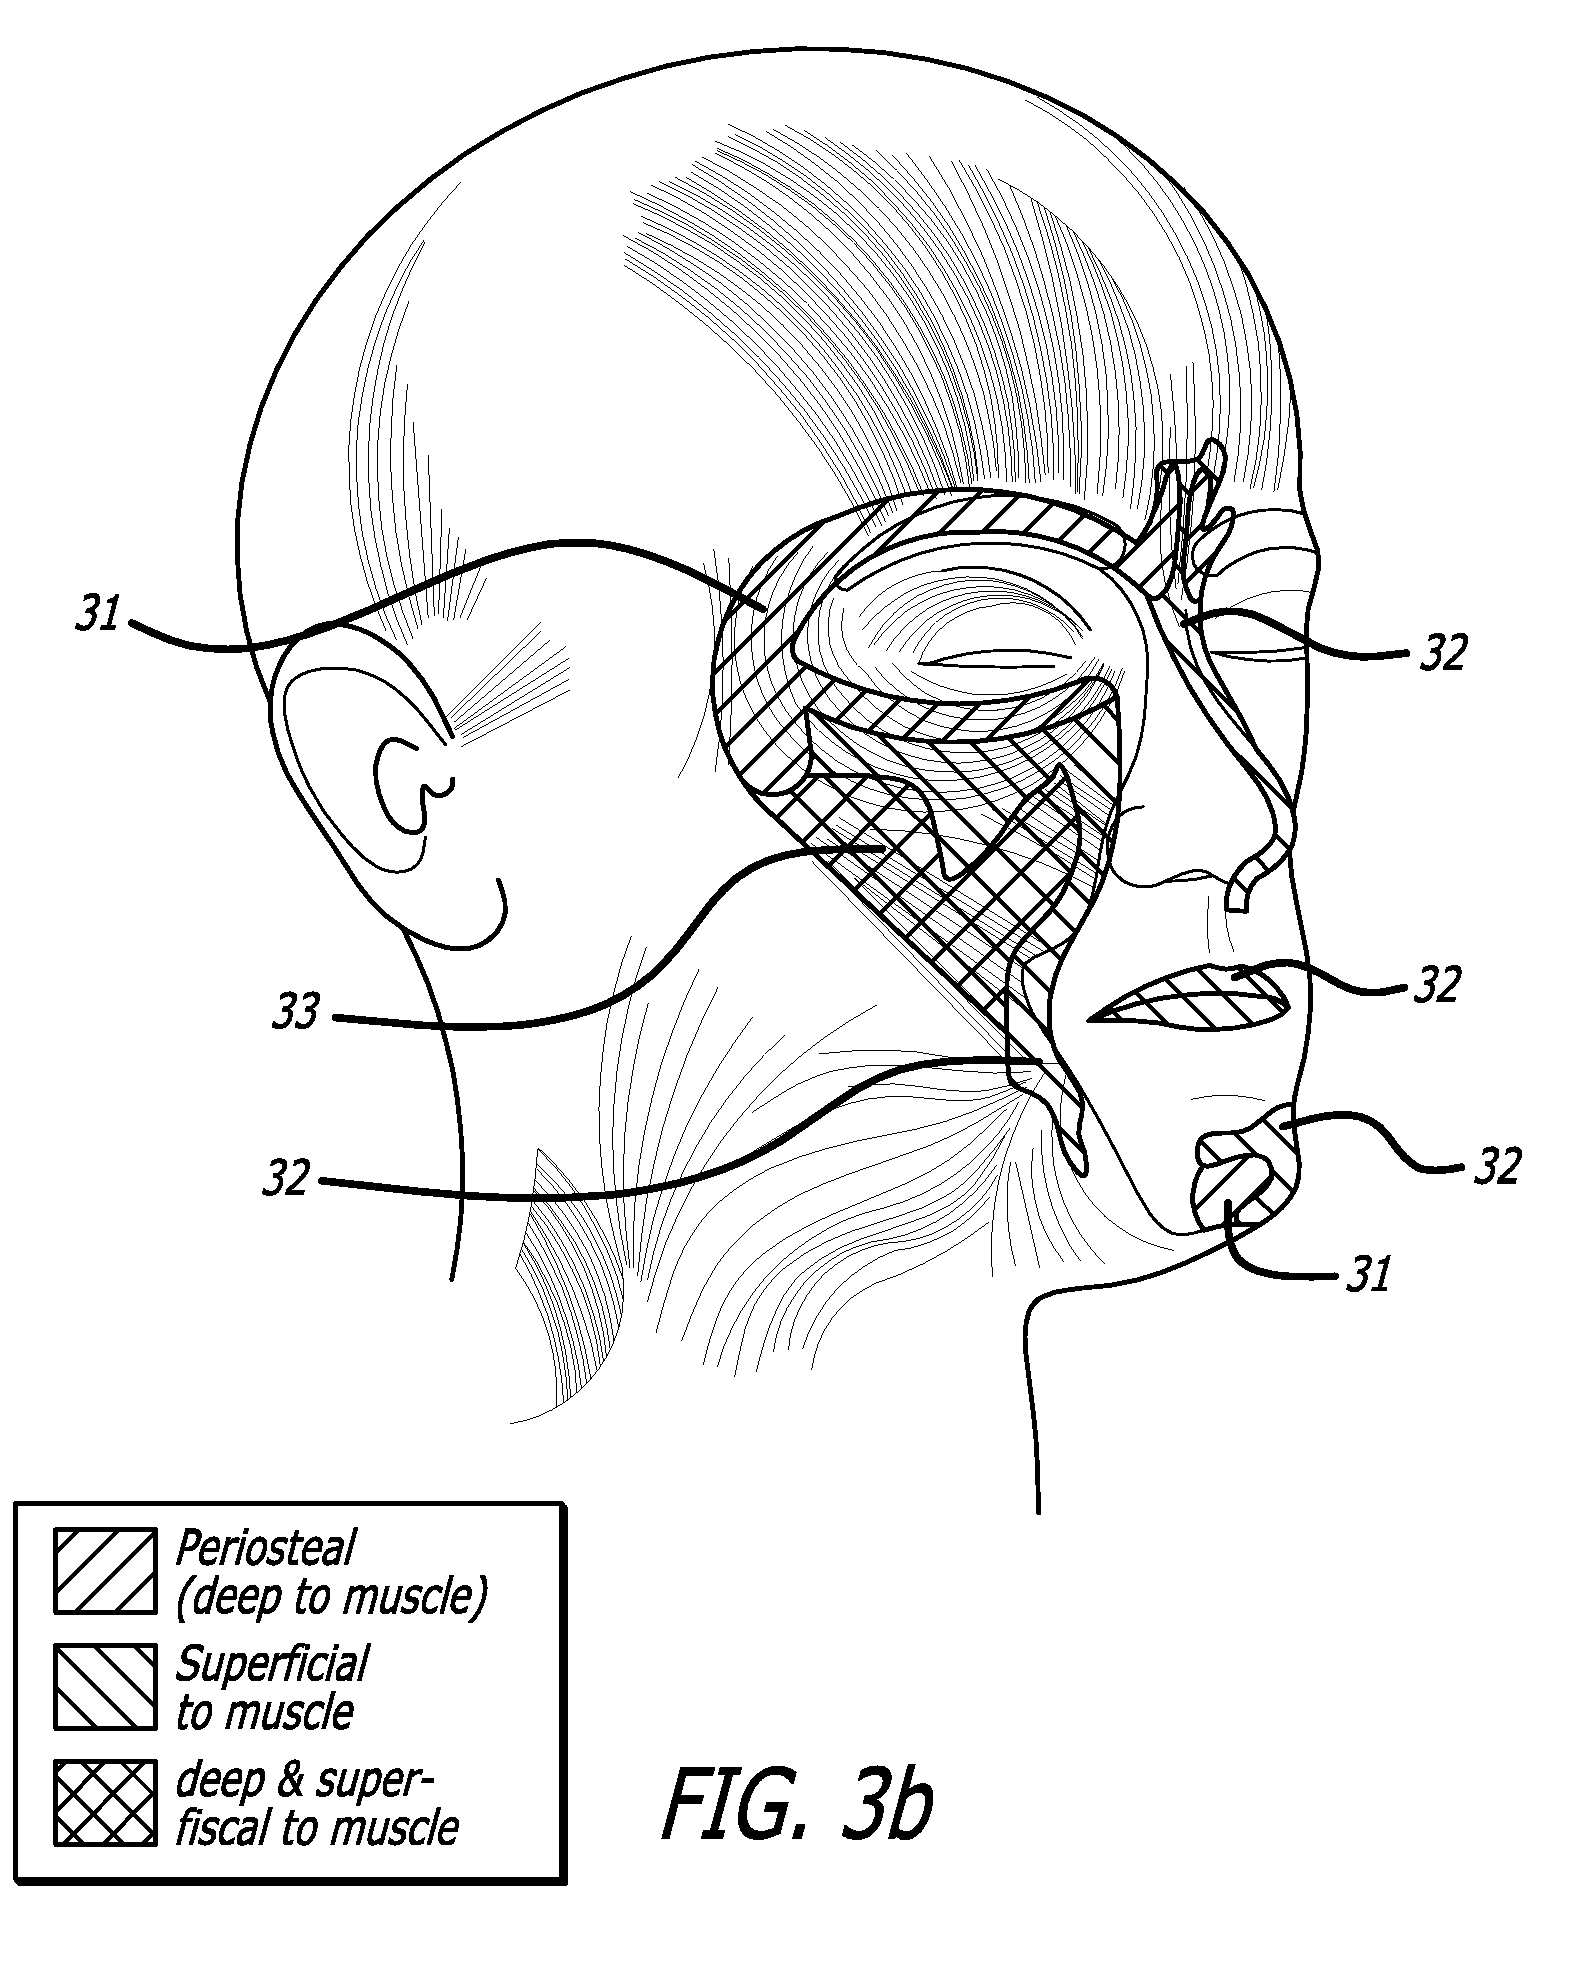 brevet us20090069739 methodology for non surgical facial sculpting Leg Sculpting patent drawing